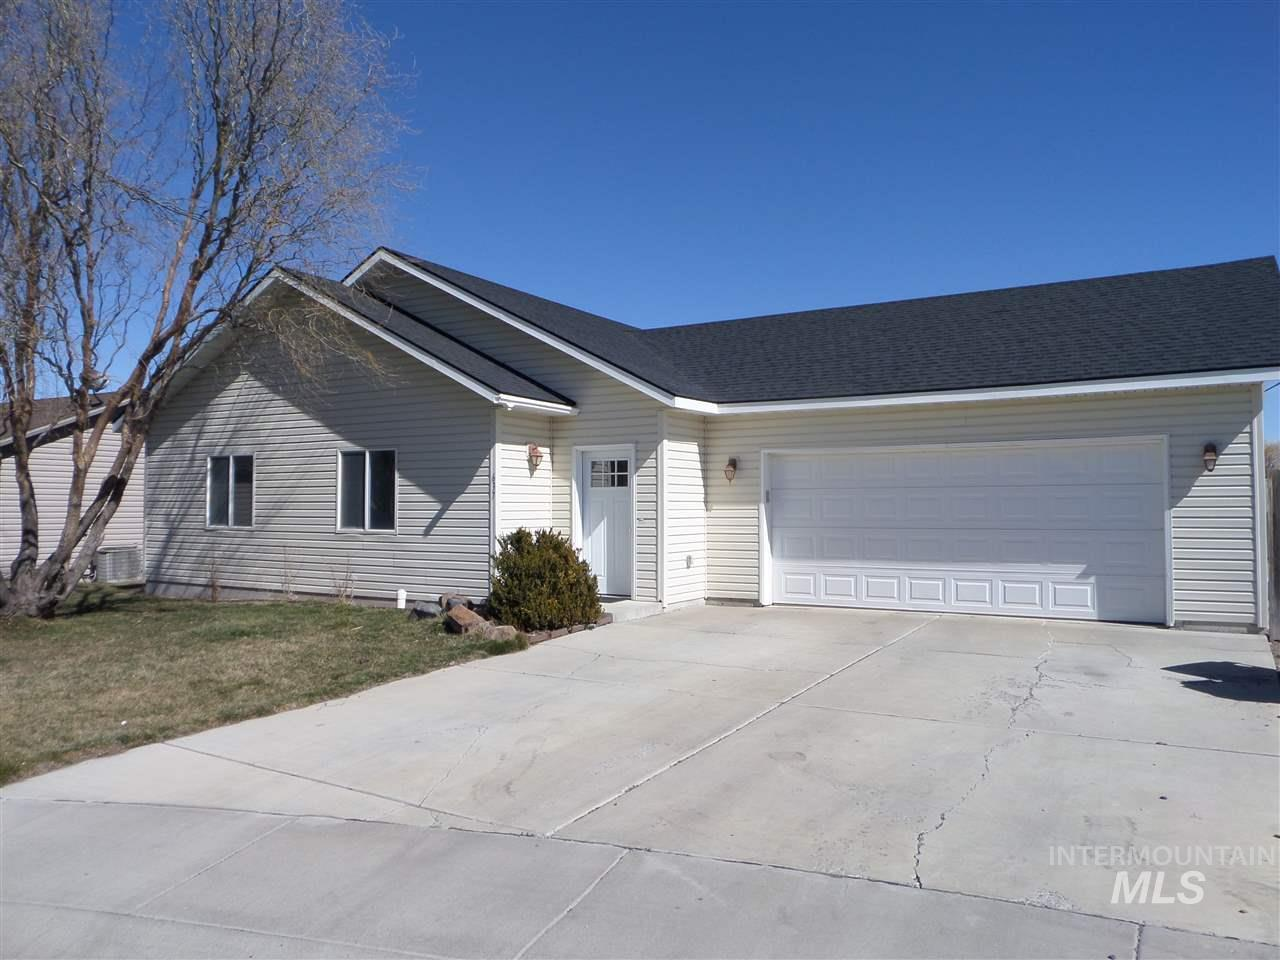 637 Titleist Court, Twin Falls, Idaho 83301, 3 Bedrooms, 2 Bathrooms, Residential For Sale, Price $174,900, 98722128